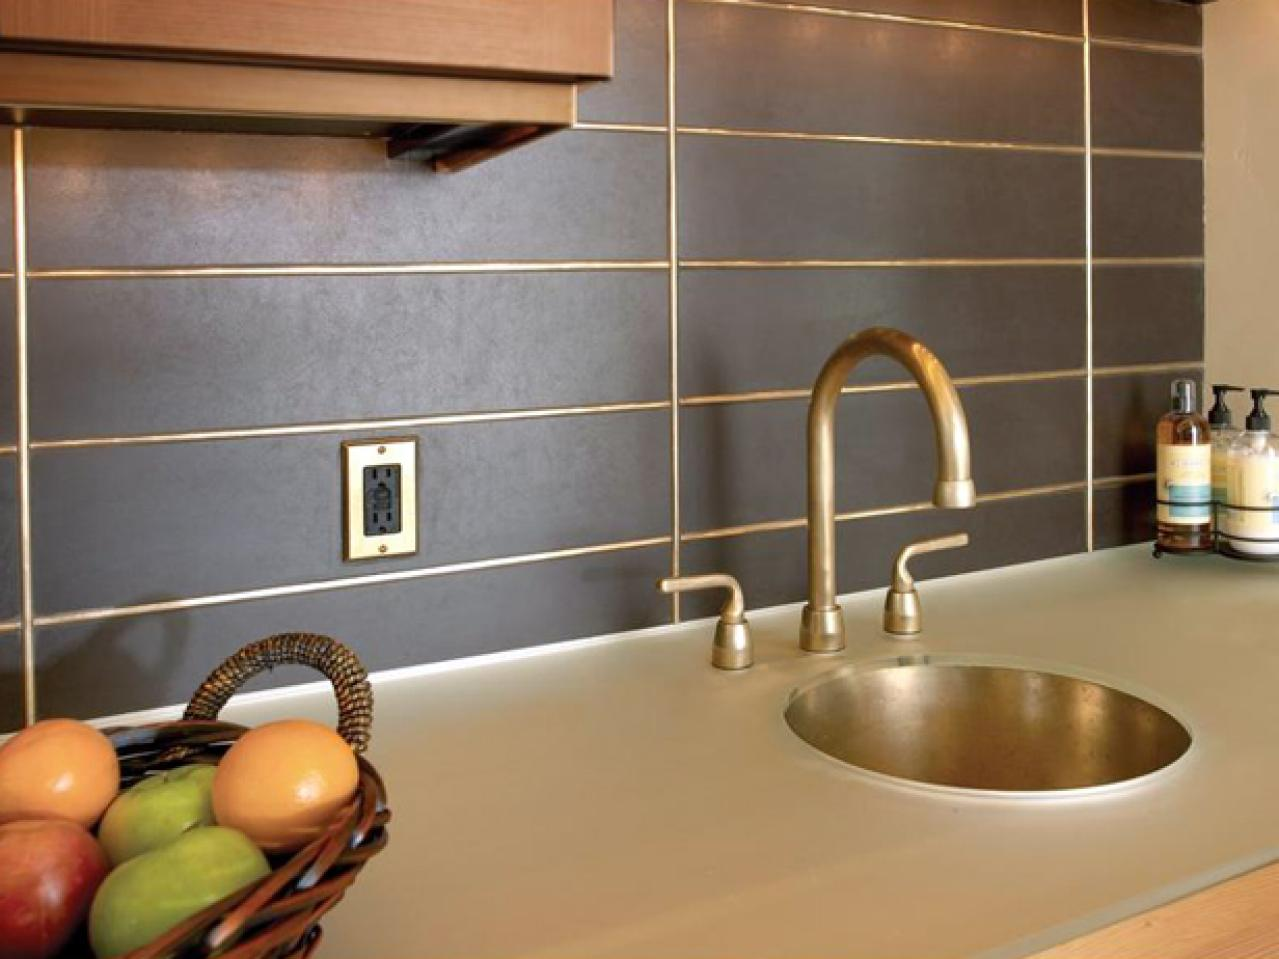 original_metal-backsplashes-bronze-tiles_s4x3-jpg-rend-hgtvcom-1280-960